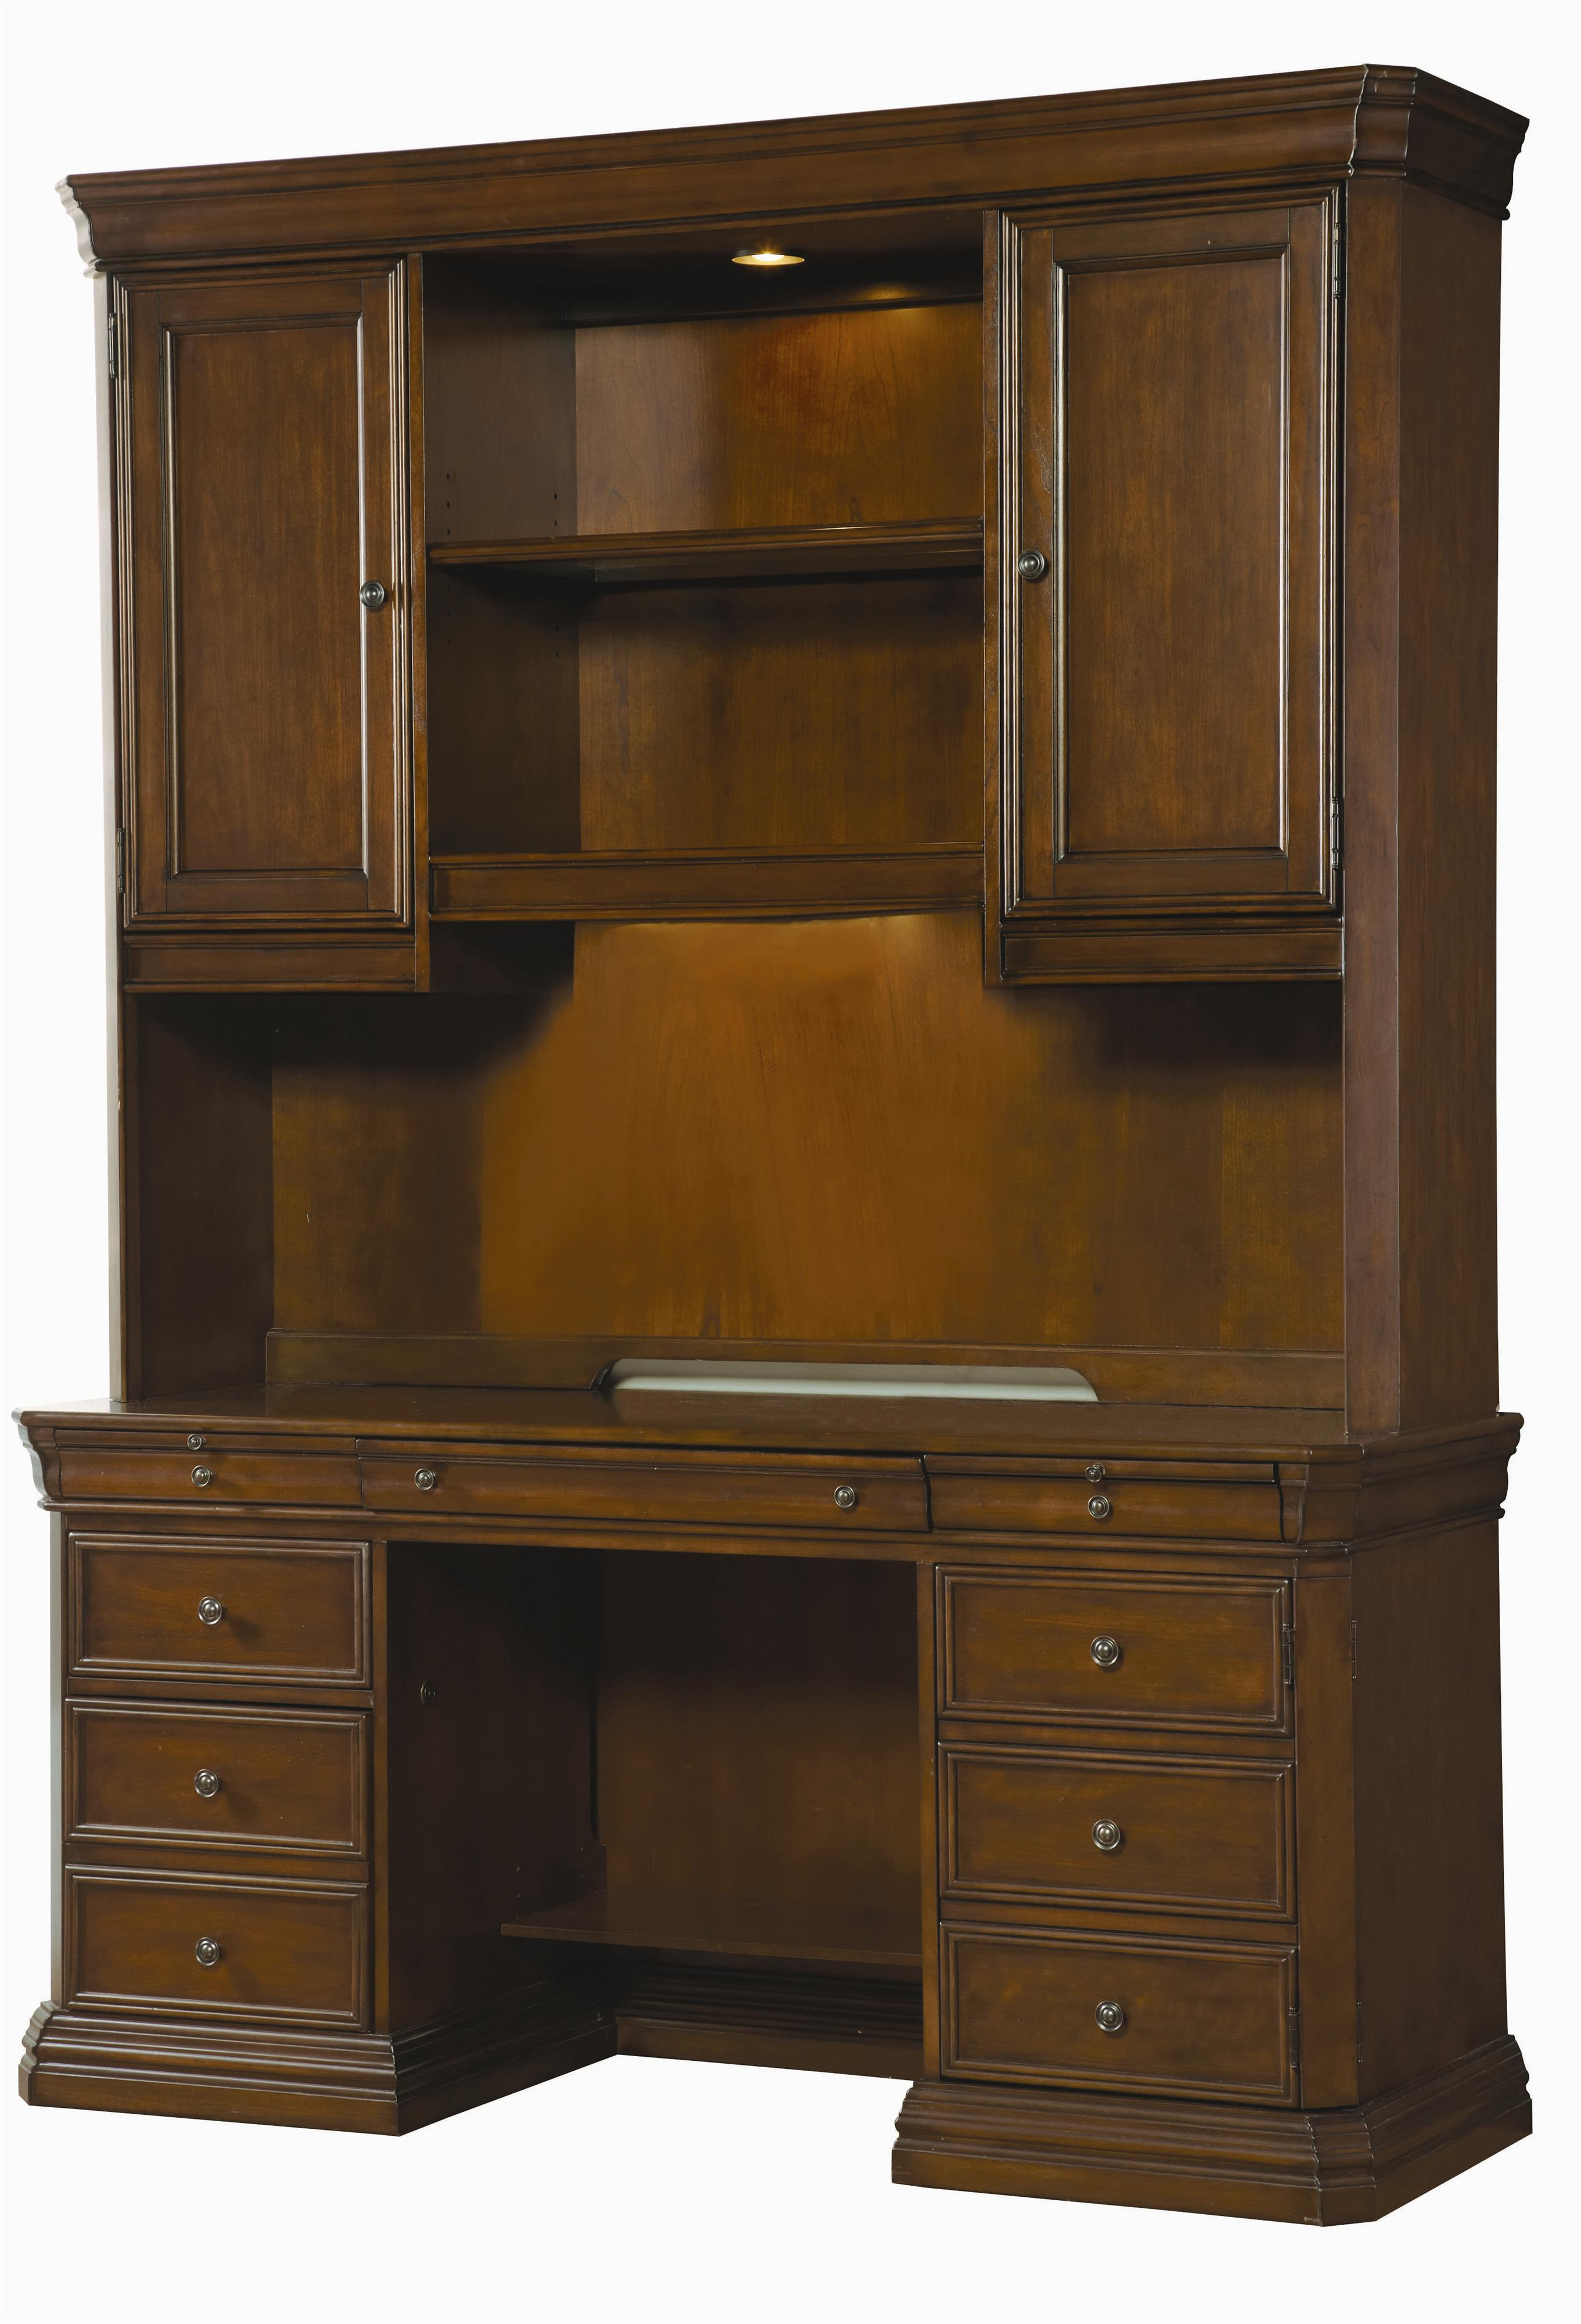 Hooker Furniture Cherry Creek  Desk and Hutch Combo - Item Number: 258-10-464+467